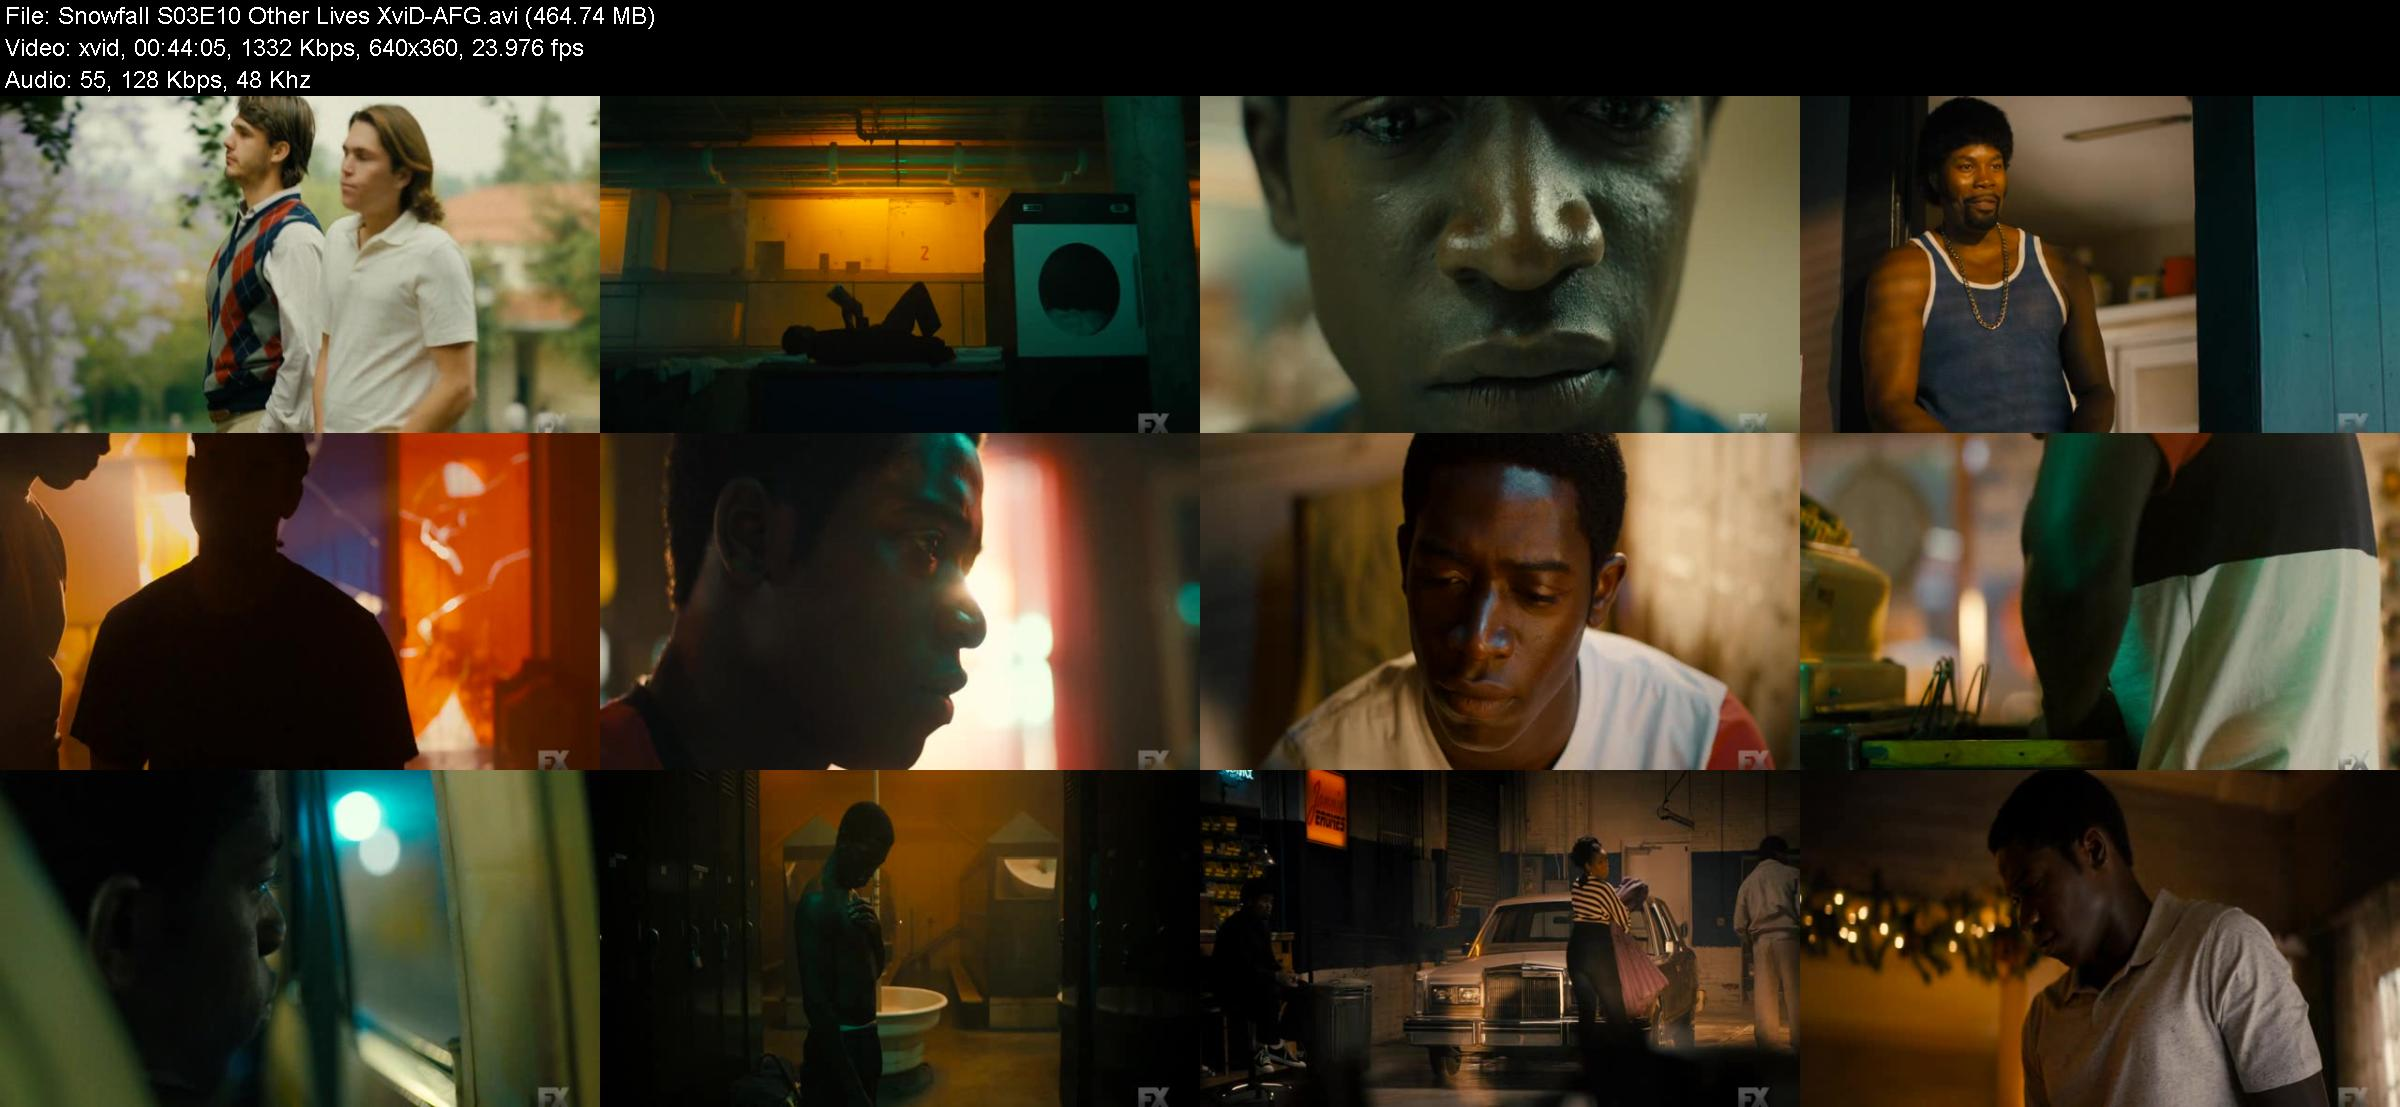 Snowfall S03E10 Other Lives XviD AFG